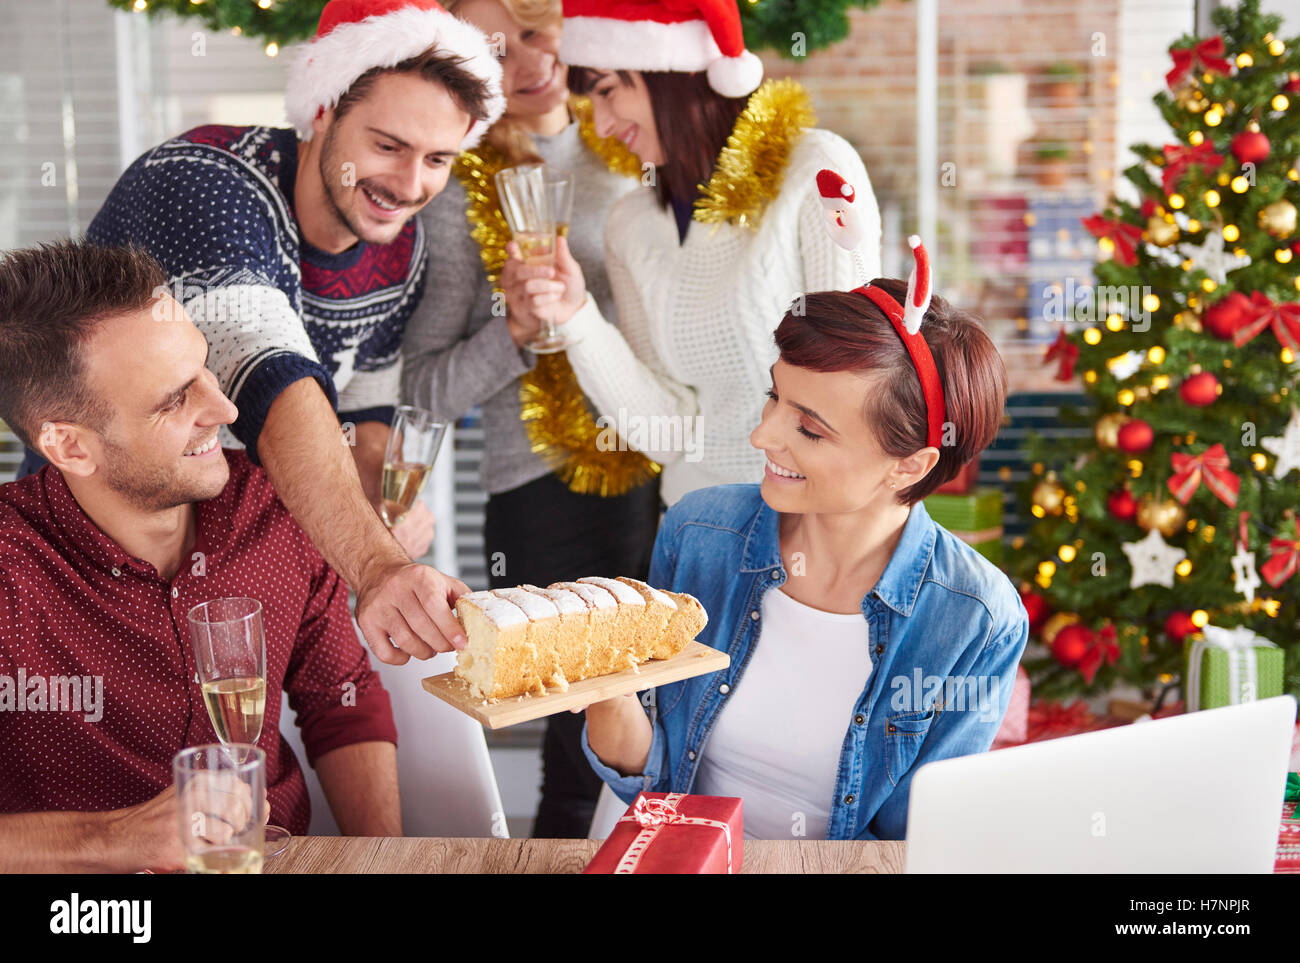 Can we try delicious Christmas cake - Stock Image